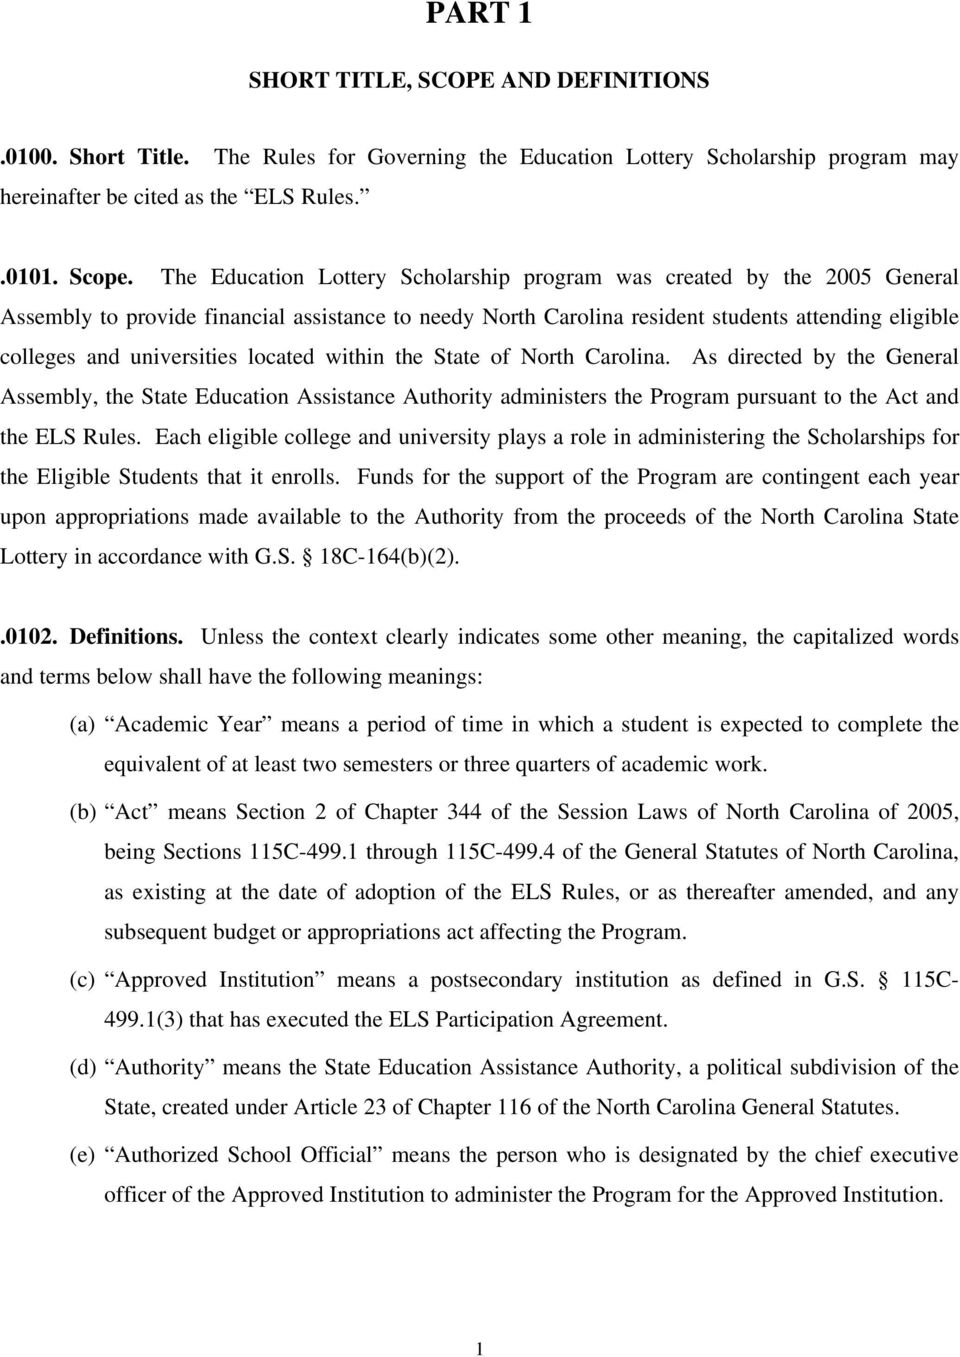 universities located within the State of North Carolina. As directed by the General Assembly, the State Education Assistance Authority administers the Program pursuant to the Act and the ELS Rules.